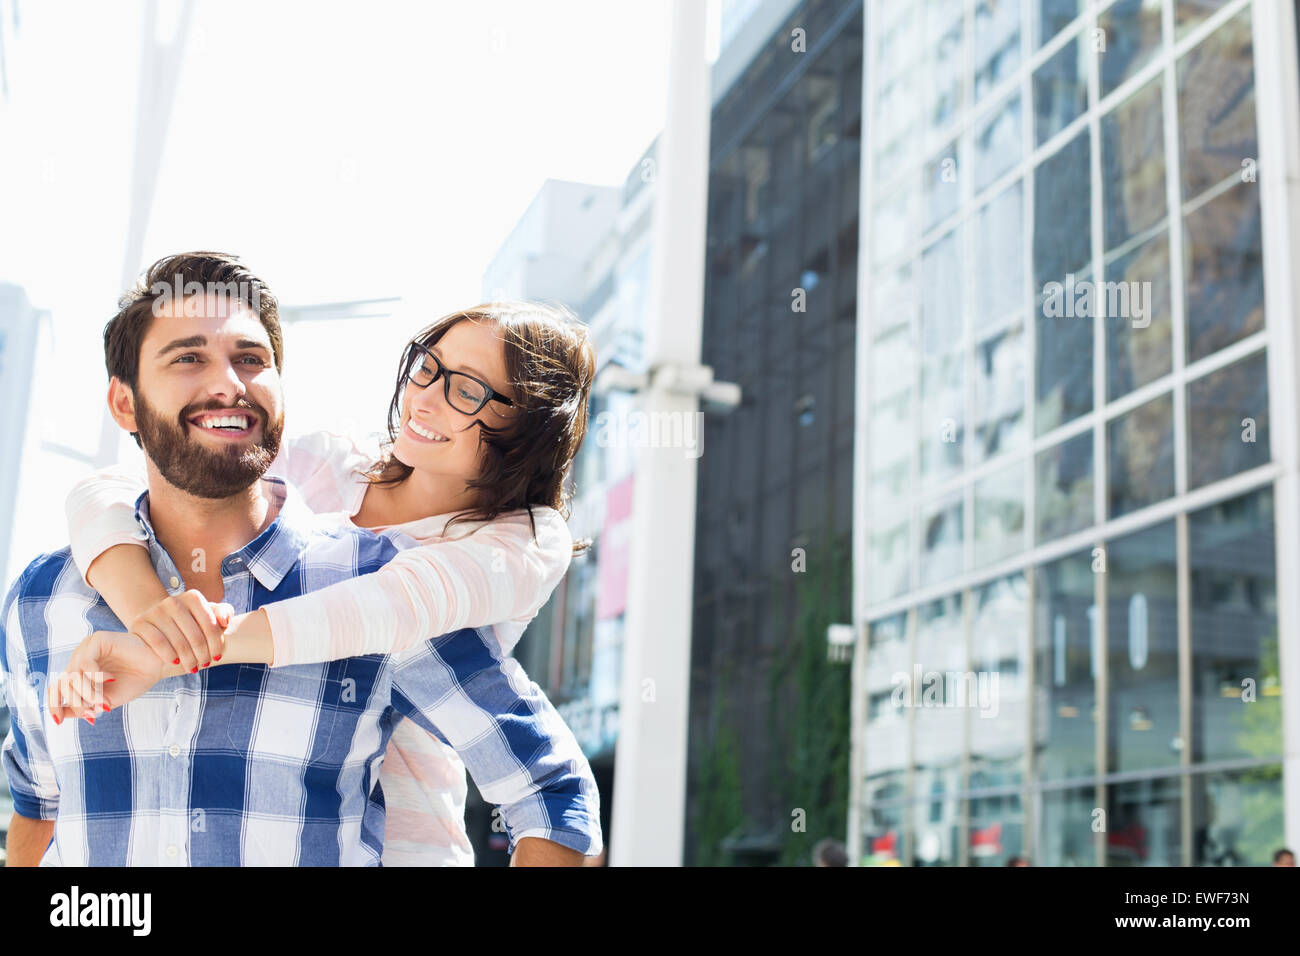 Happy man giving piggyback ride to woman in city - Stock Image